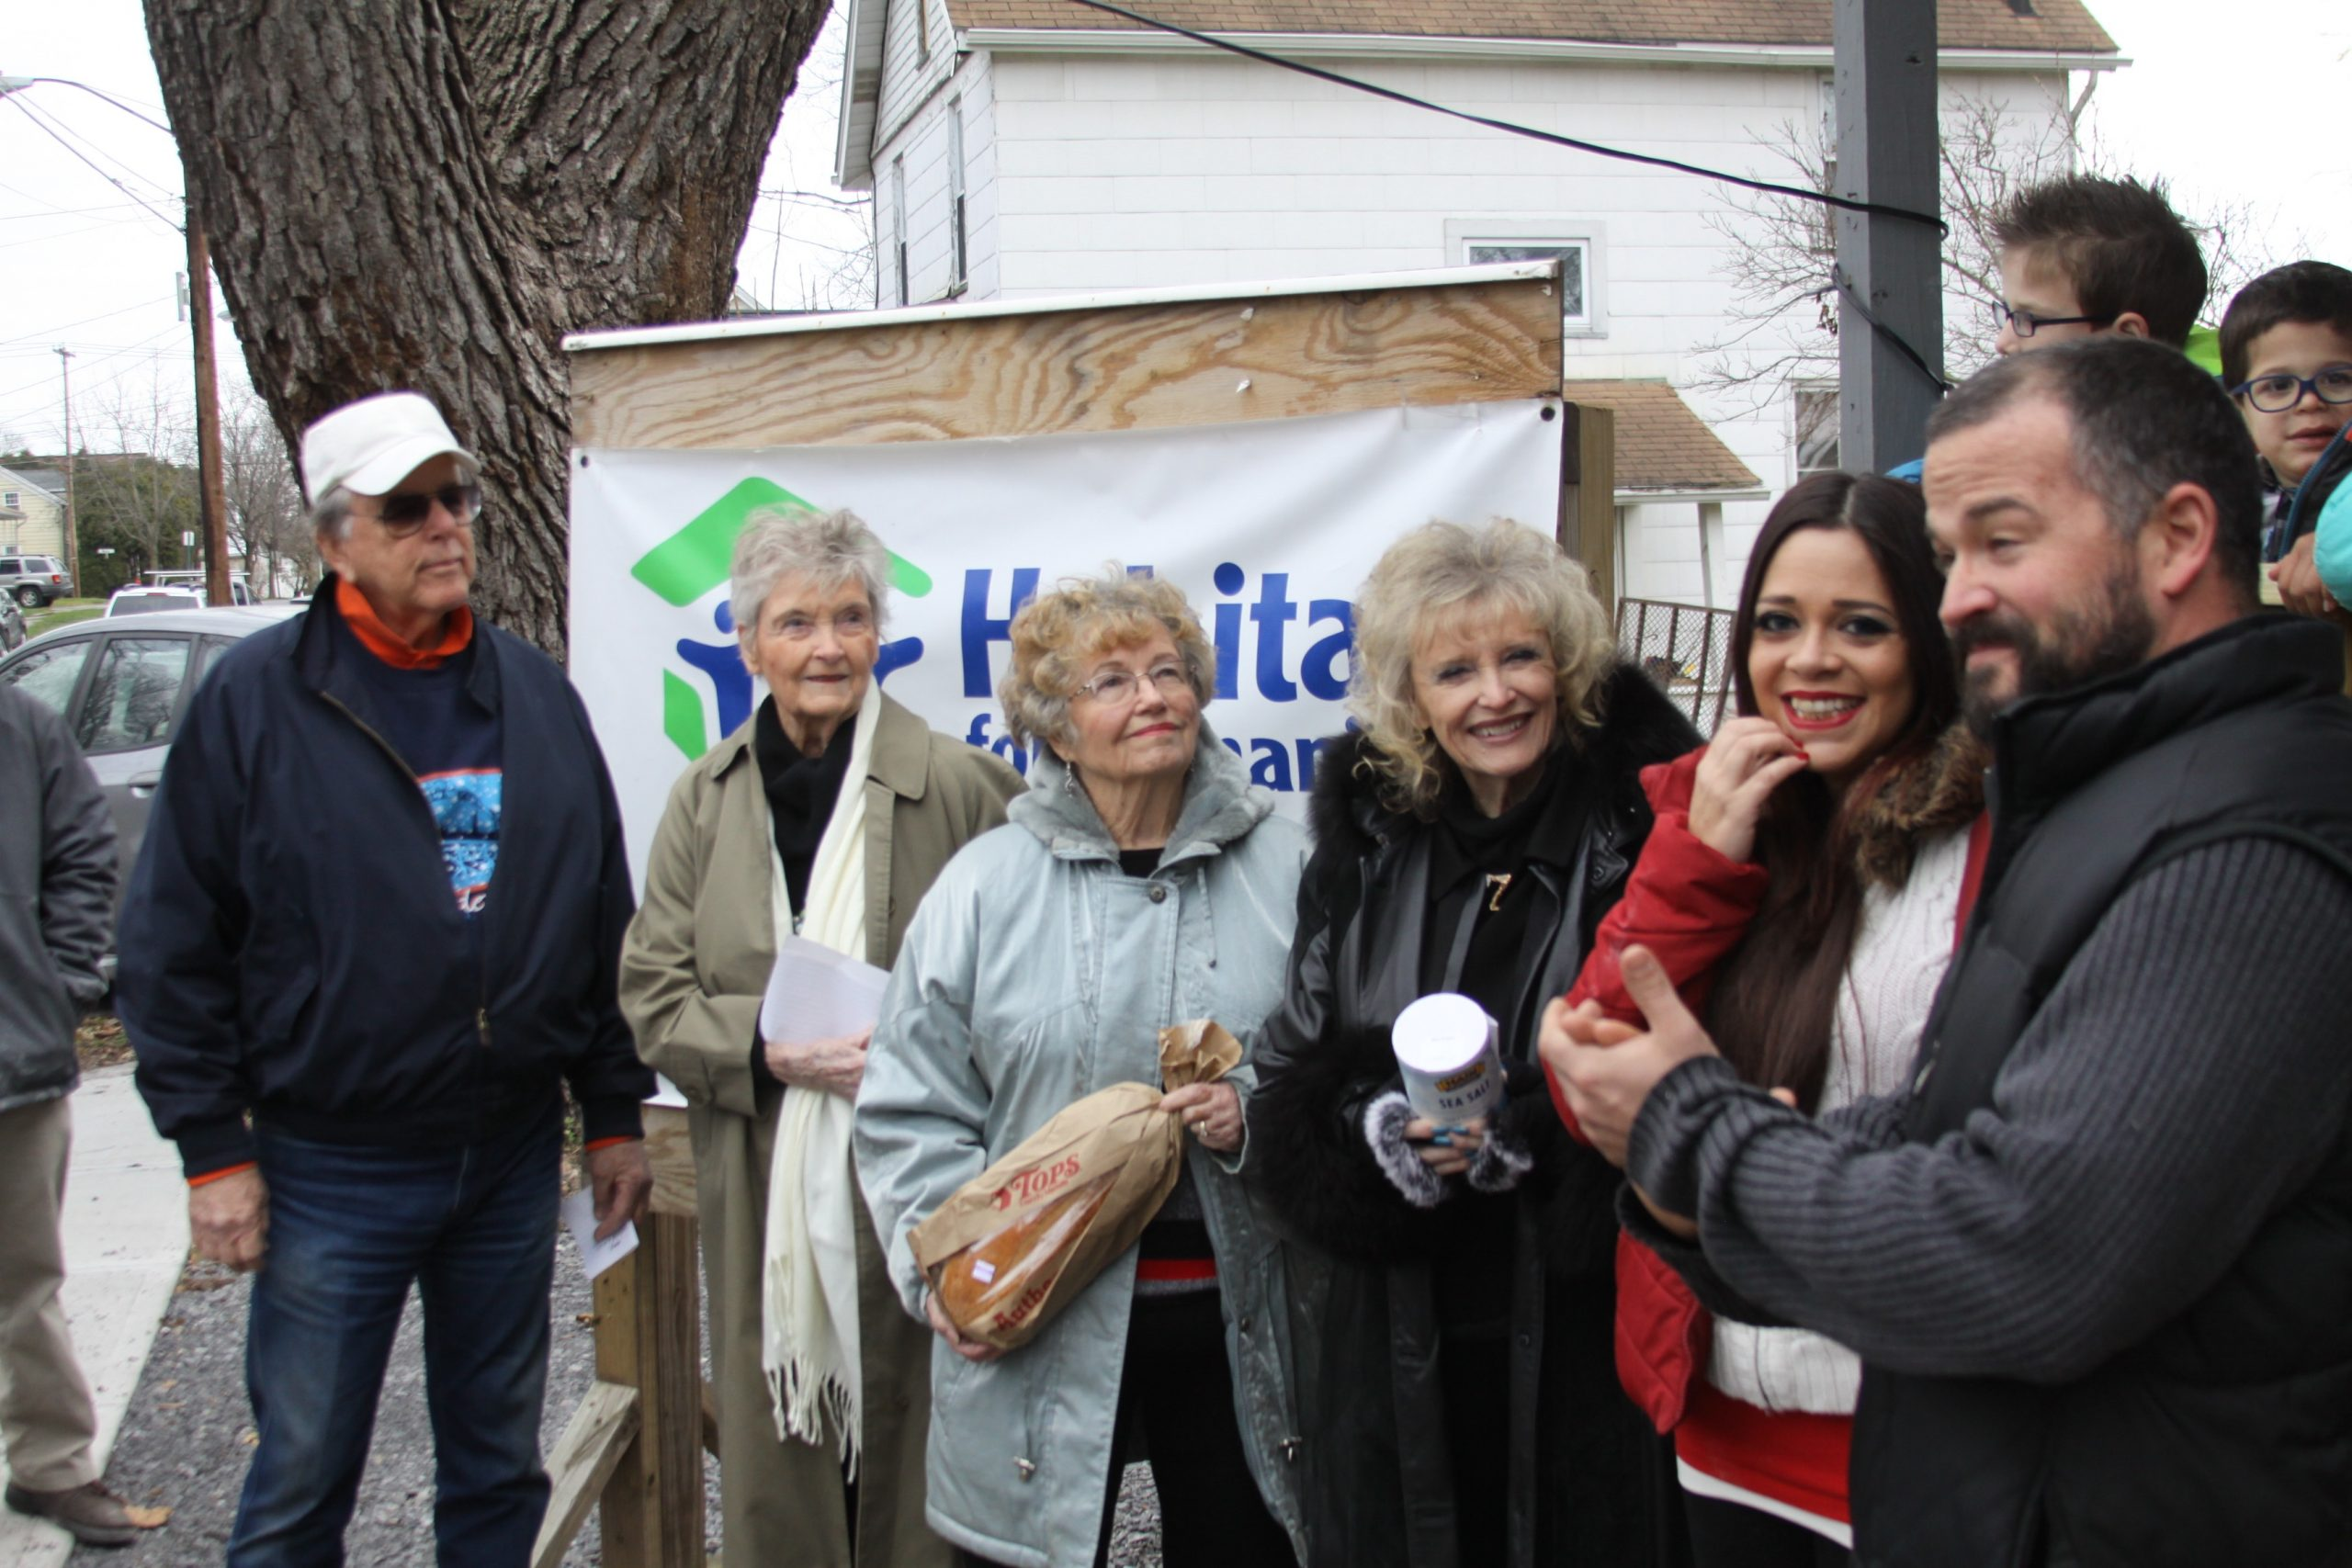 Bailey Building and Loan Helps Habitat for Humanity